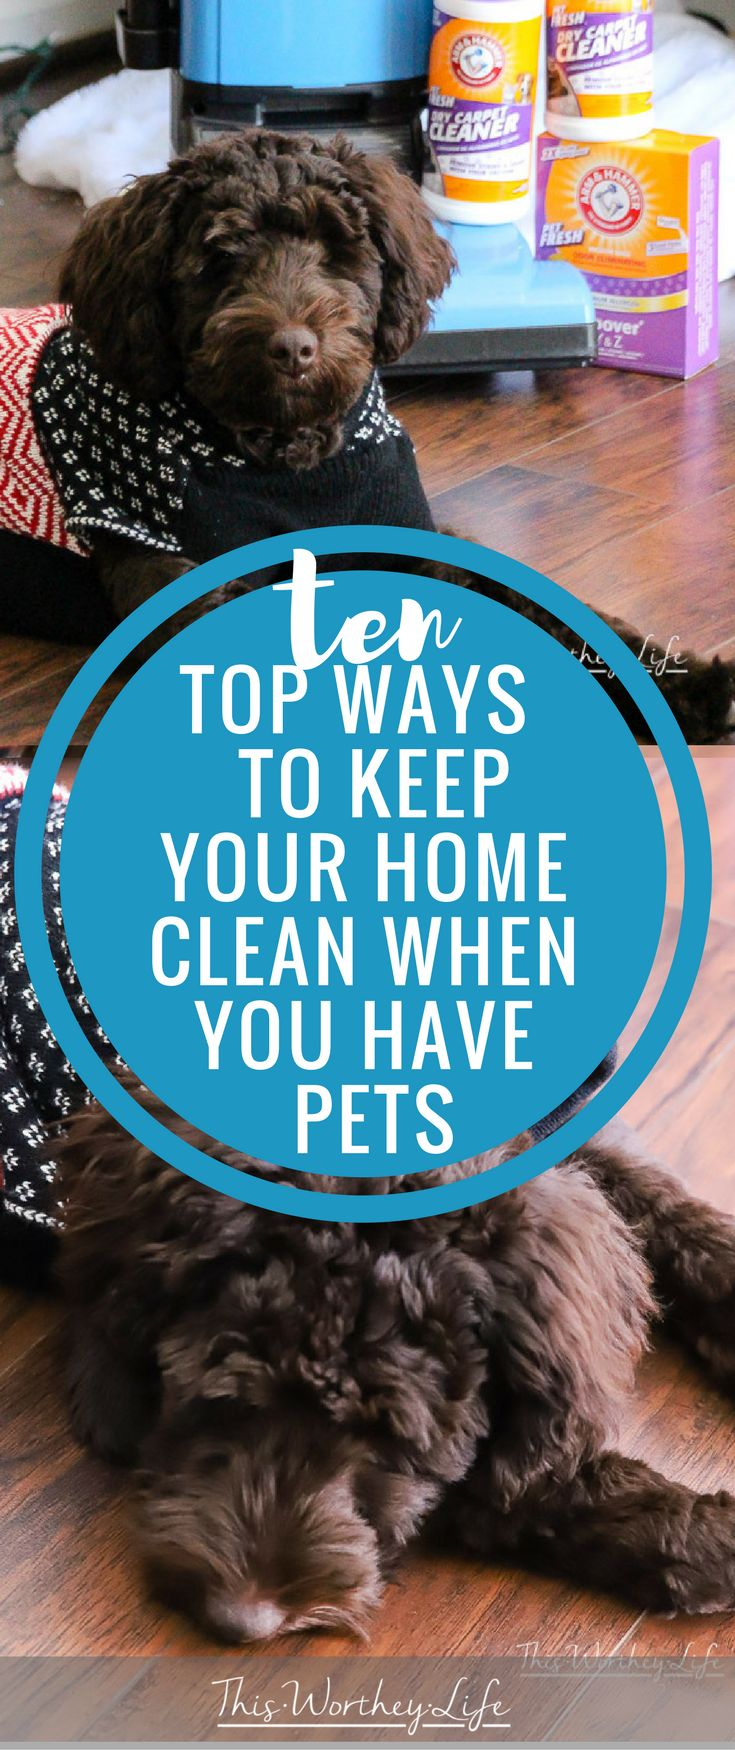 10 Top Ways To Keep Your Home Clean When You Have Pets. The holidays are here, and I'm sharing things I do to make sure my house is clean and ready to go. When you have pets, you may need to go the extra mile. Here's how I avoid doing a lot backbreaking cleaning before the holidays. [ad]